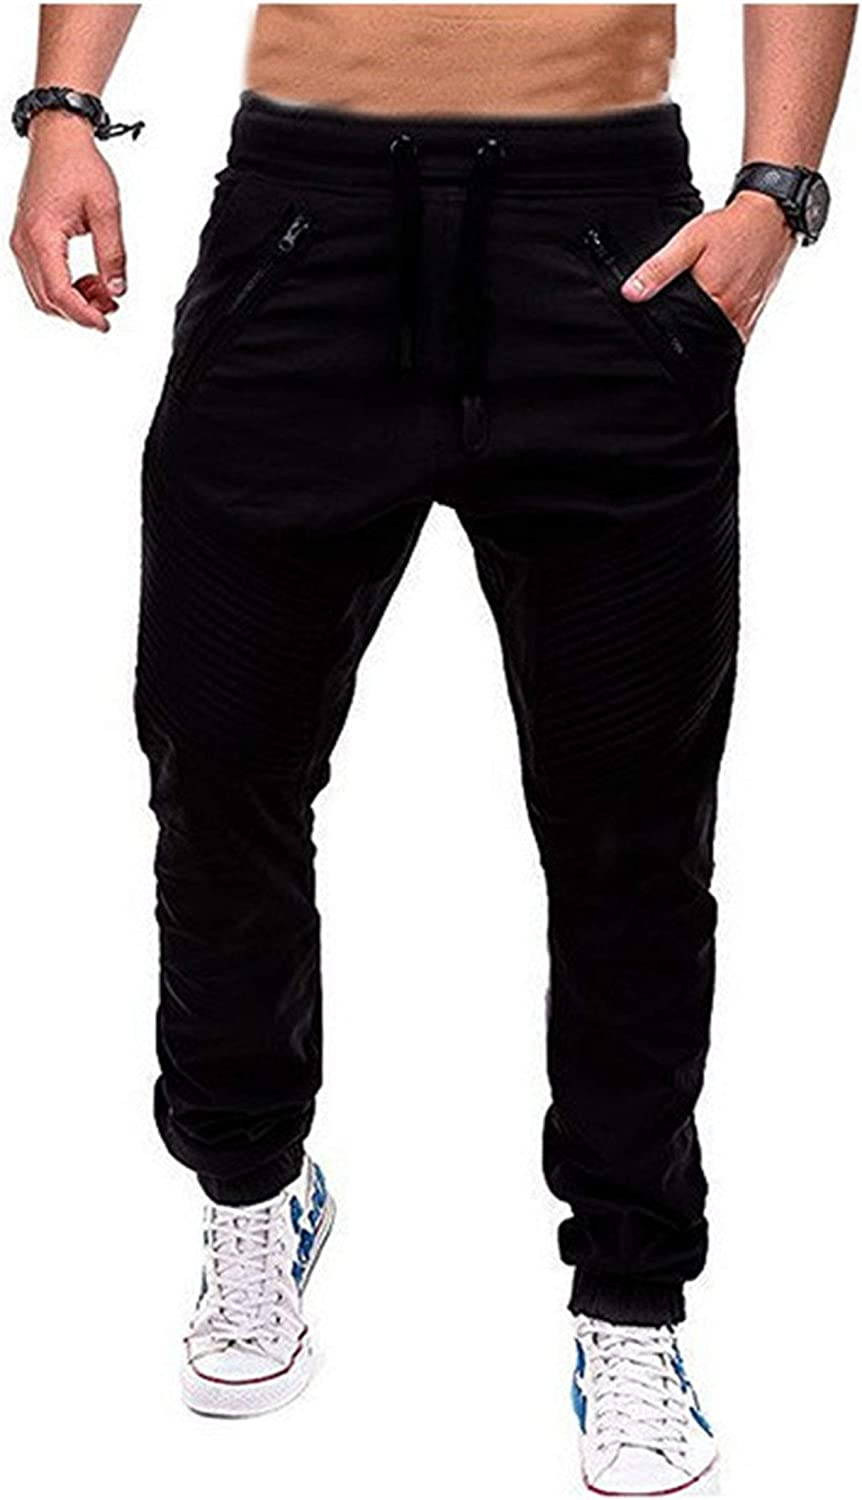 Mens Tapered Workout Running Pants High material Tulsa Mall Training Sweatpants S Jogger